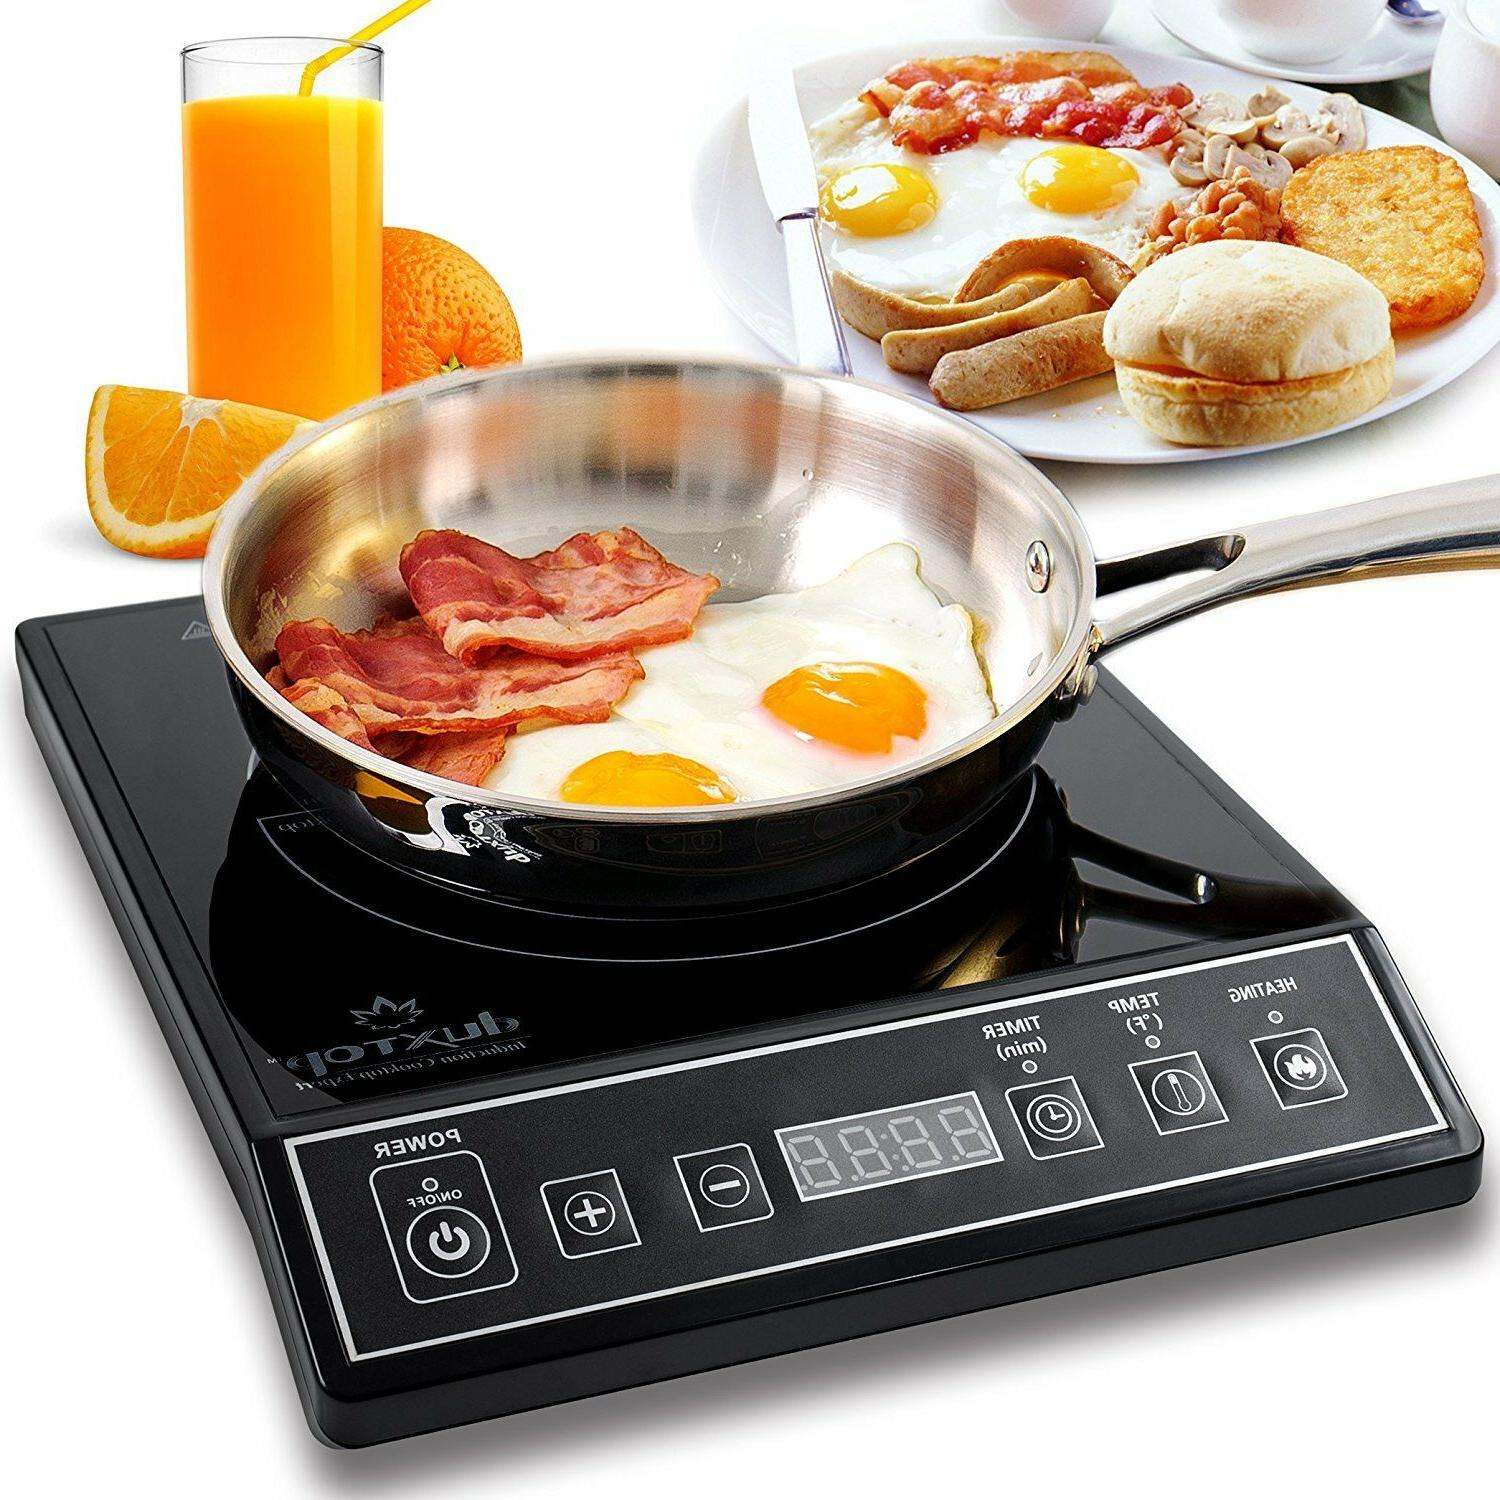 DuxTop Portable Induction Cooktop Countertop Burner, 1800-Wa